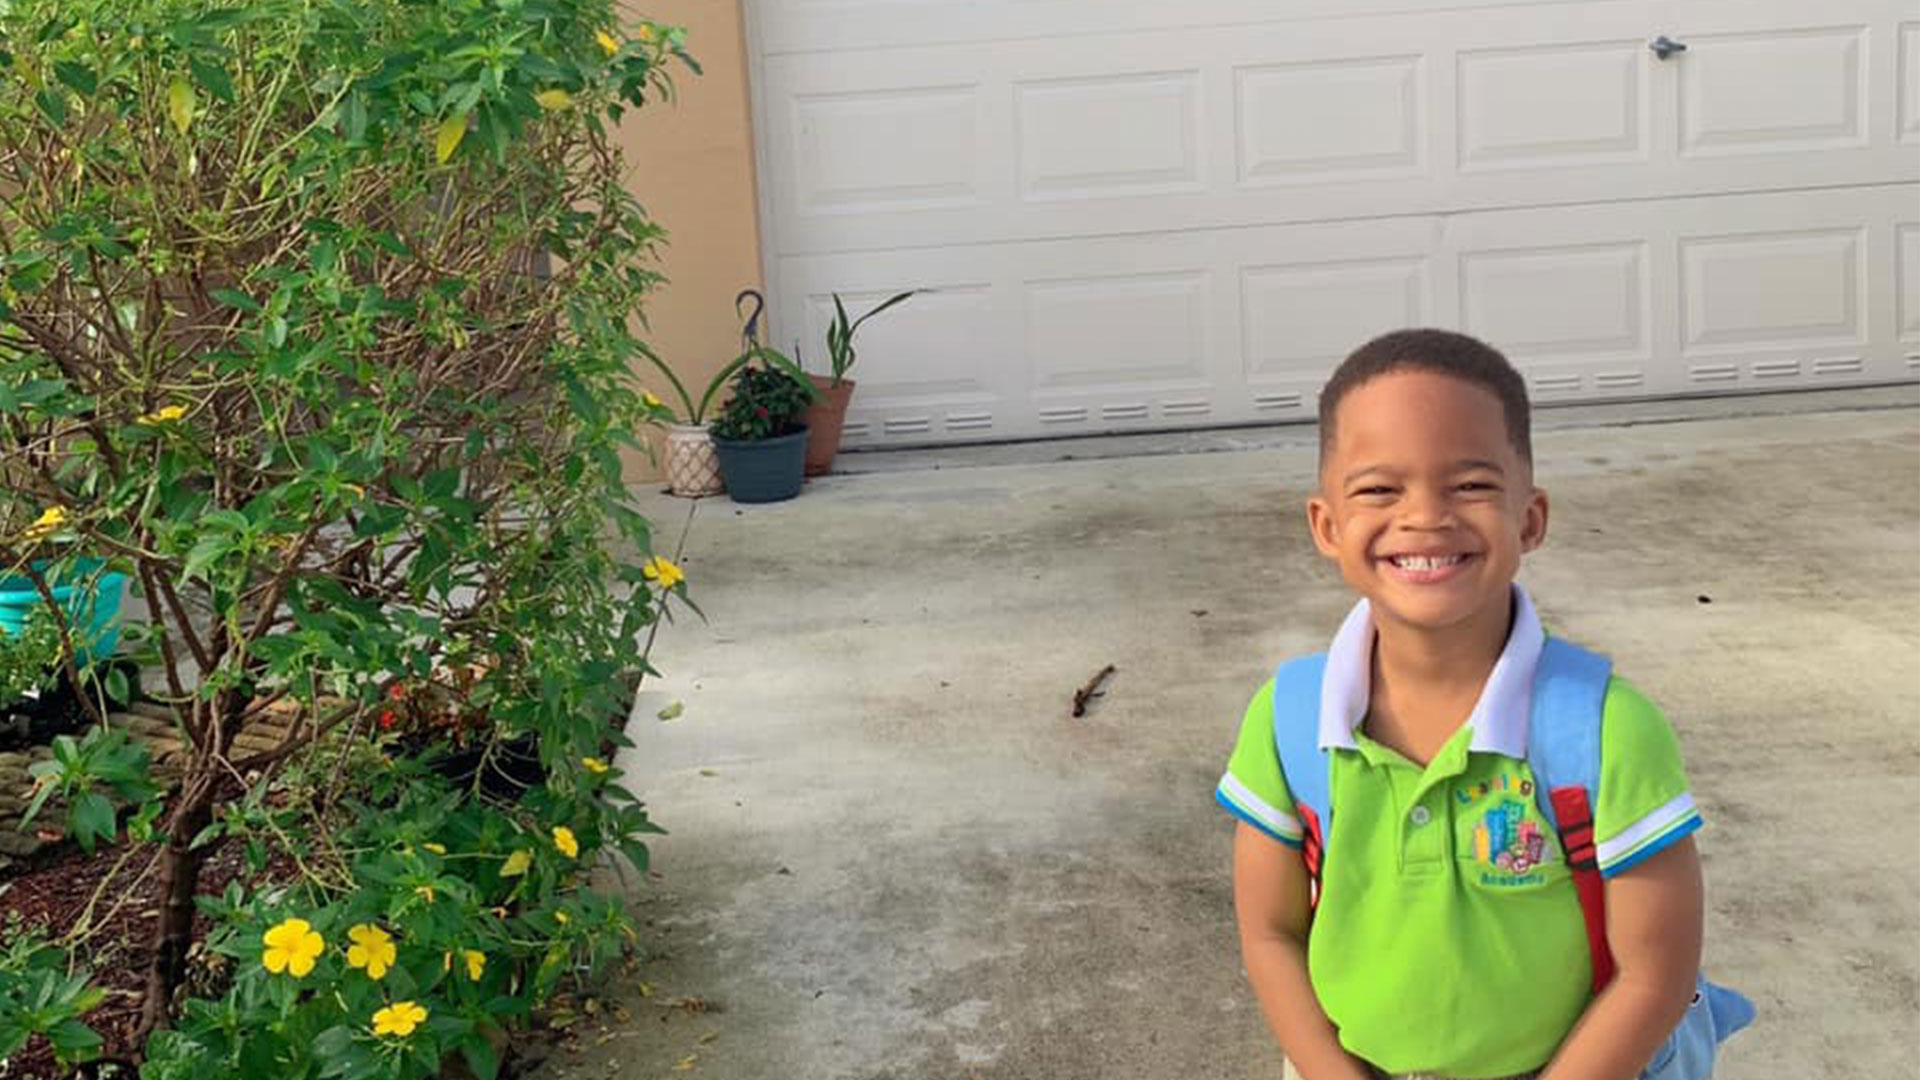 Makai Simmons First Day